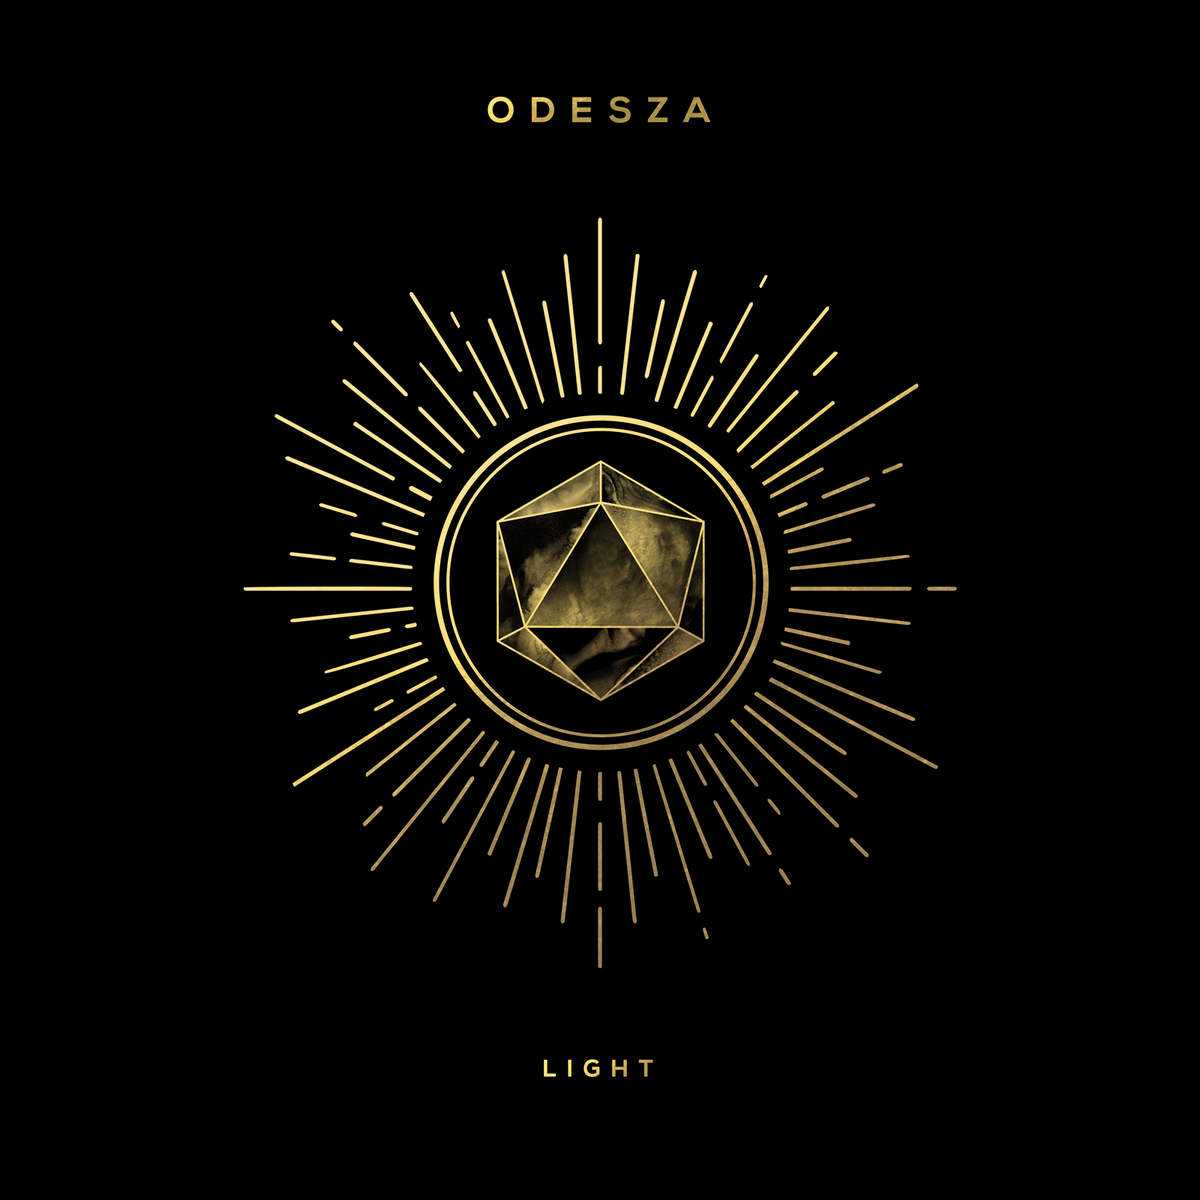 ODESZA-Light-2015-1200x1200.png